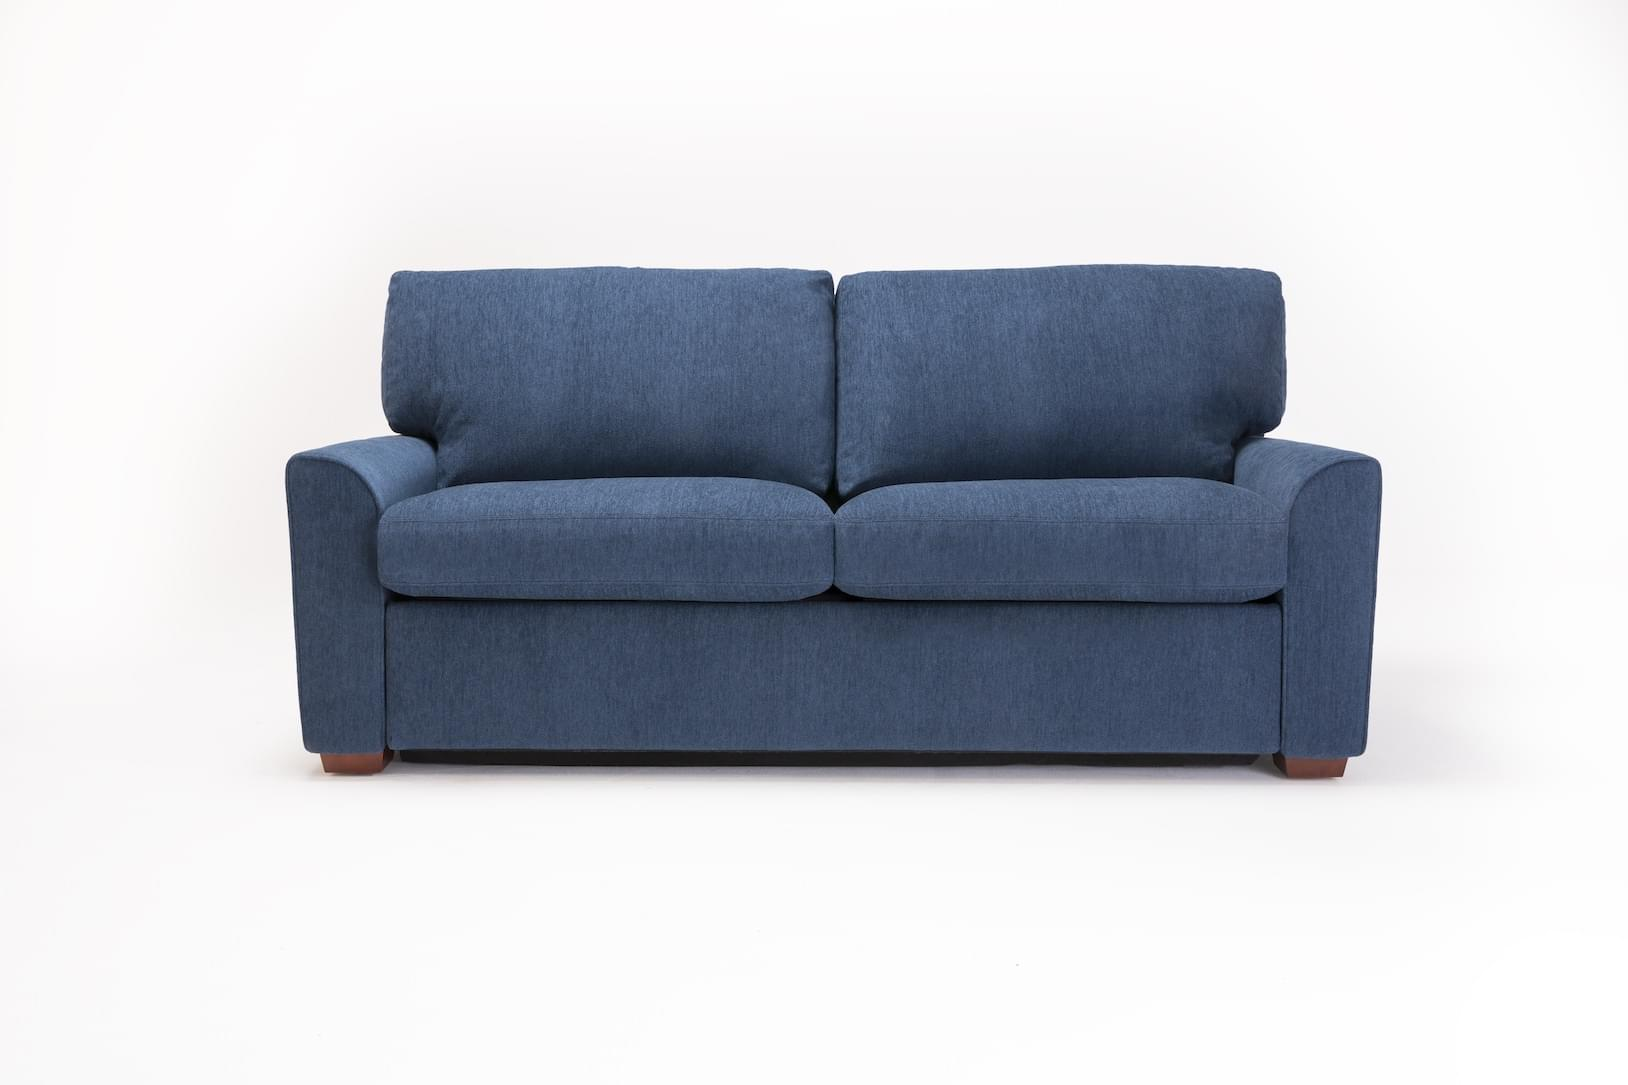 American Leather Kein sofa at Mums Place Furniture Monterey CA